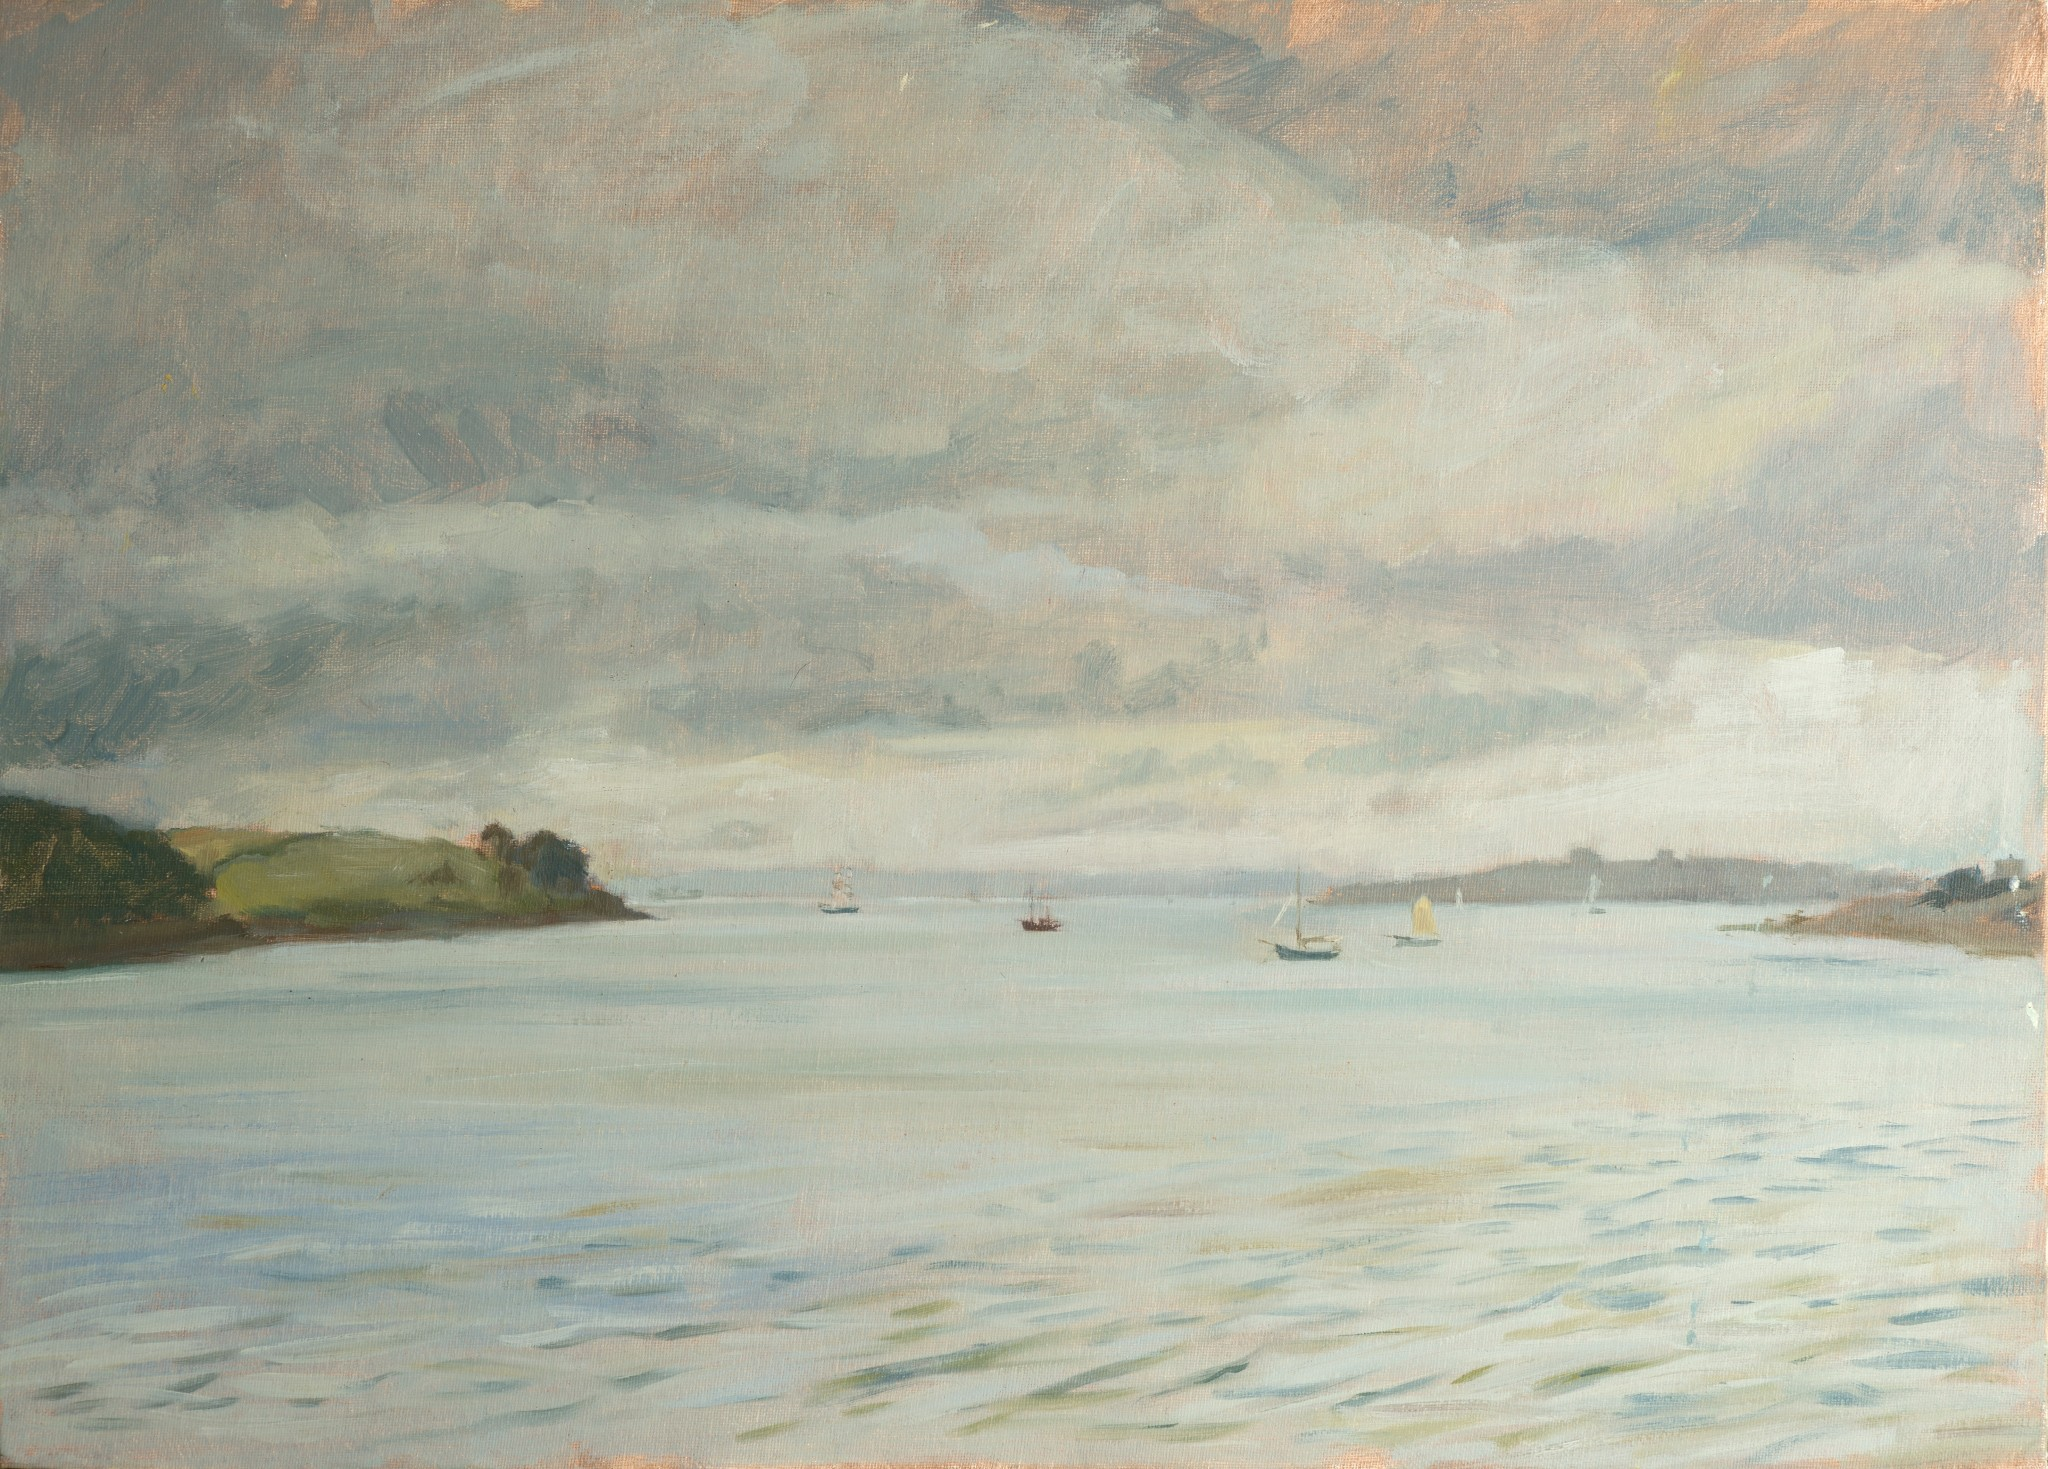 A Calm and Misty Day in St Mawes